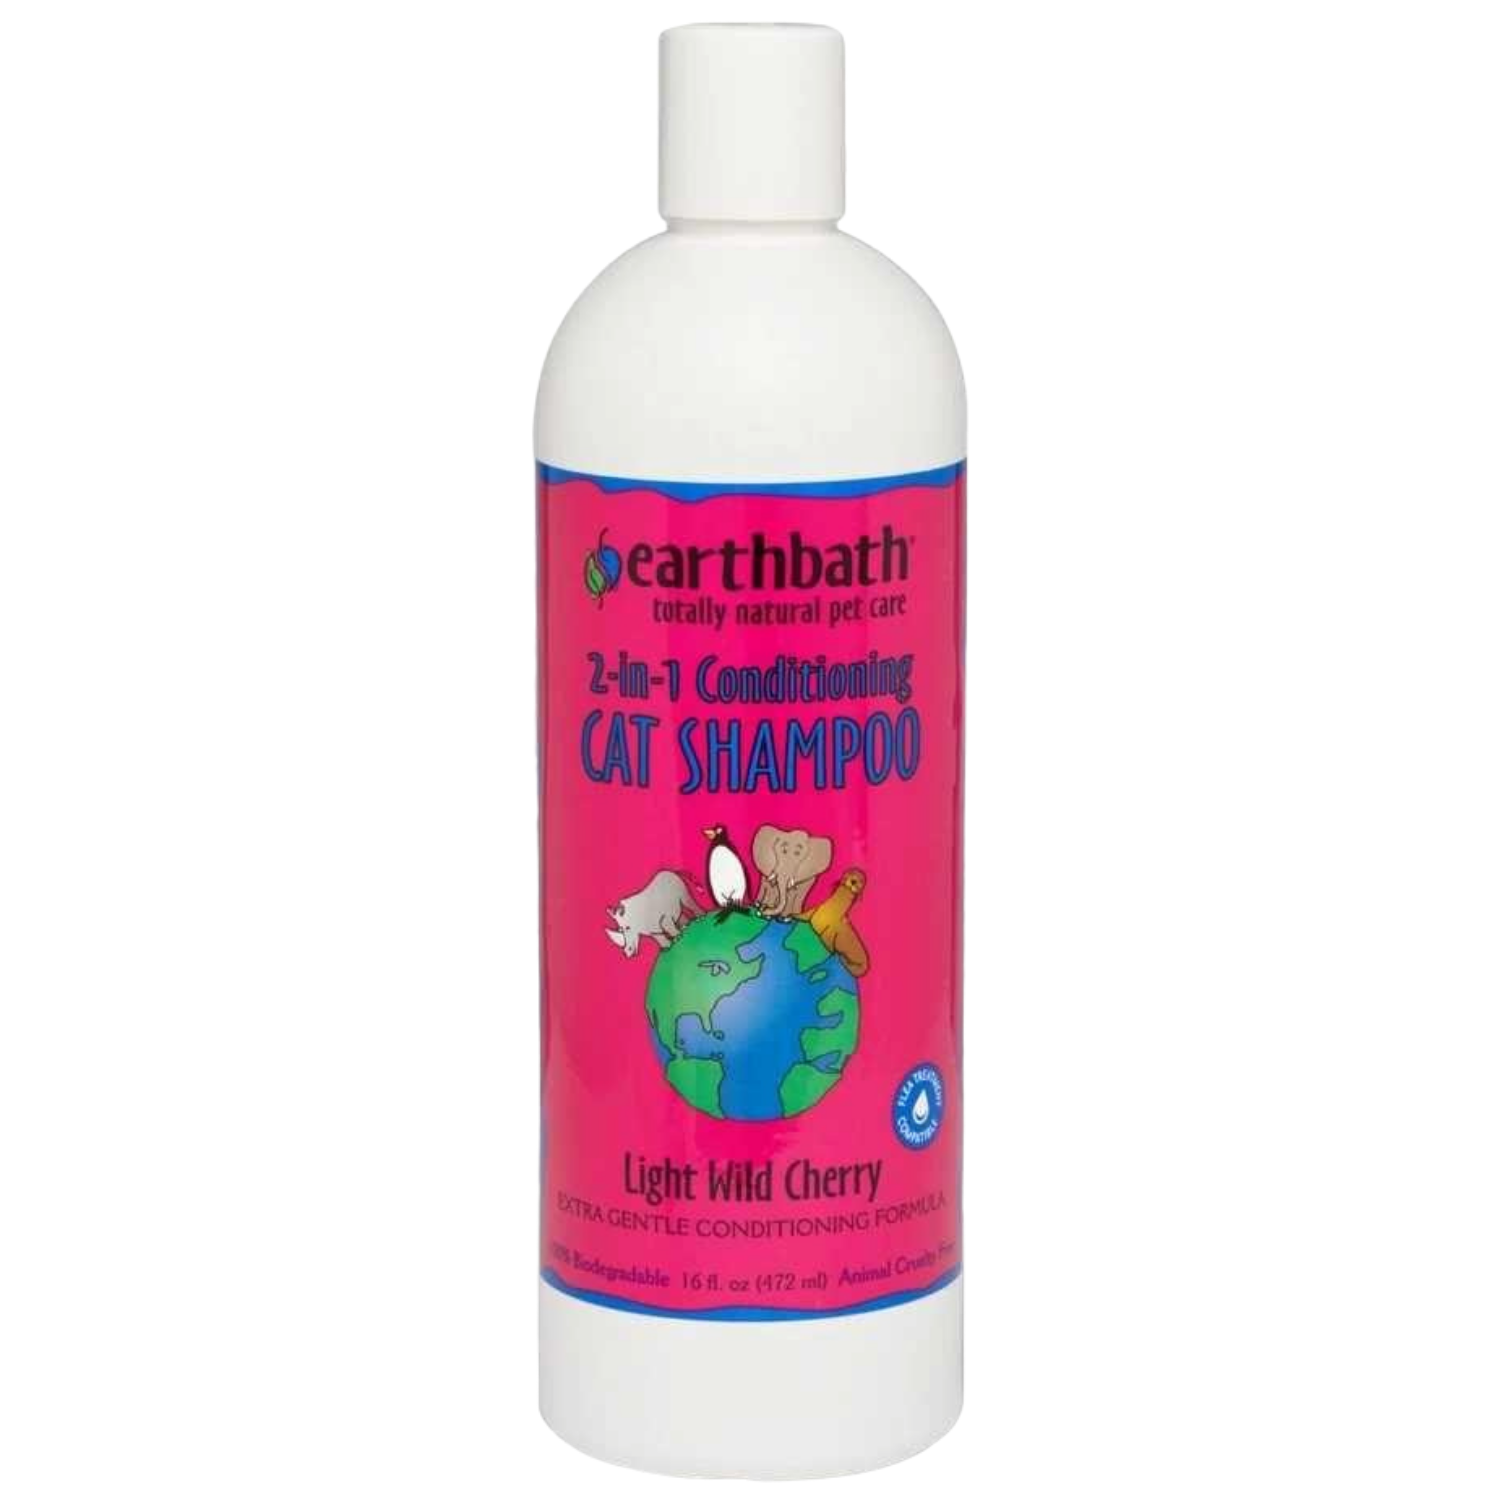 Earthbath 2-in-1 Conditioning Cat Shampoo (Light Wild Cherry)